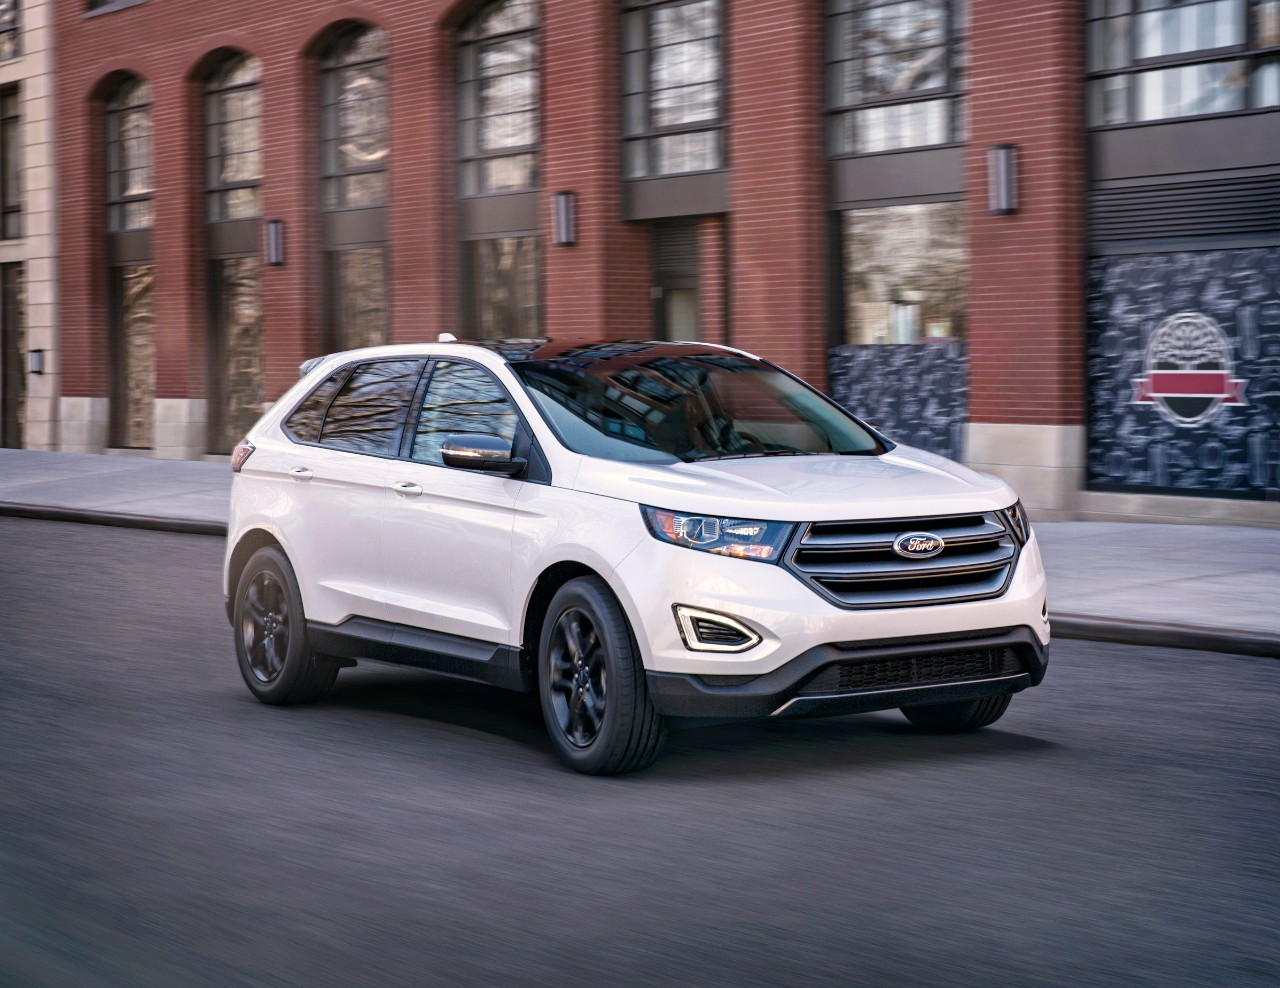 2018 Ford Edge front 3/4 view